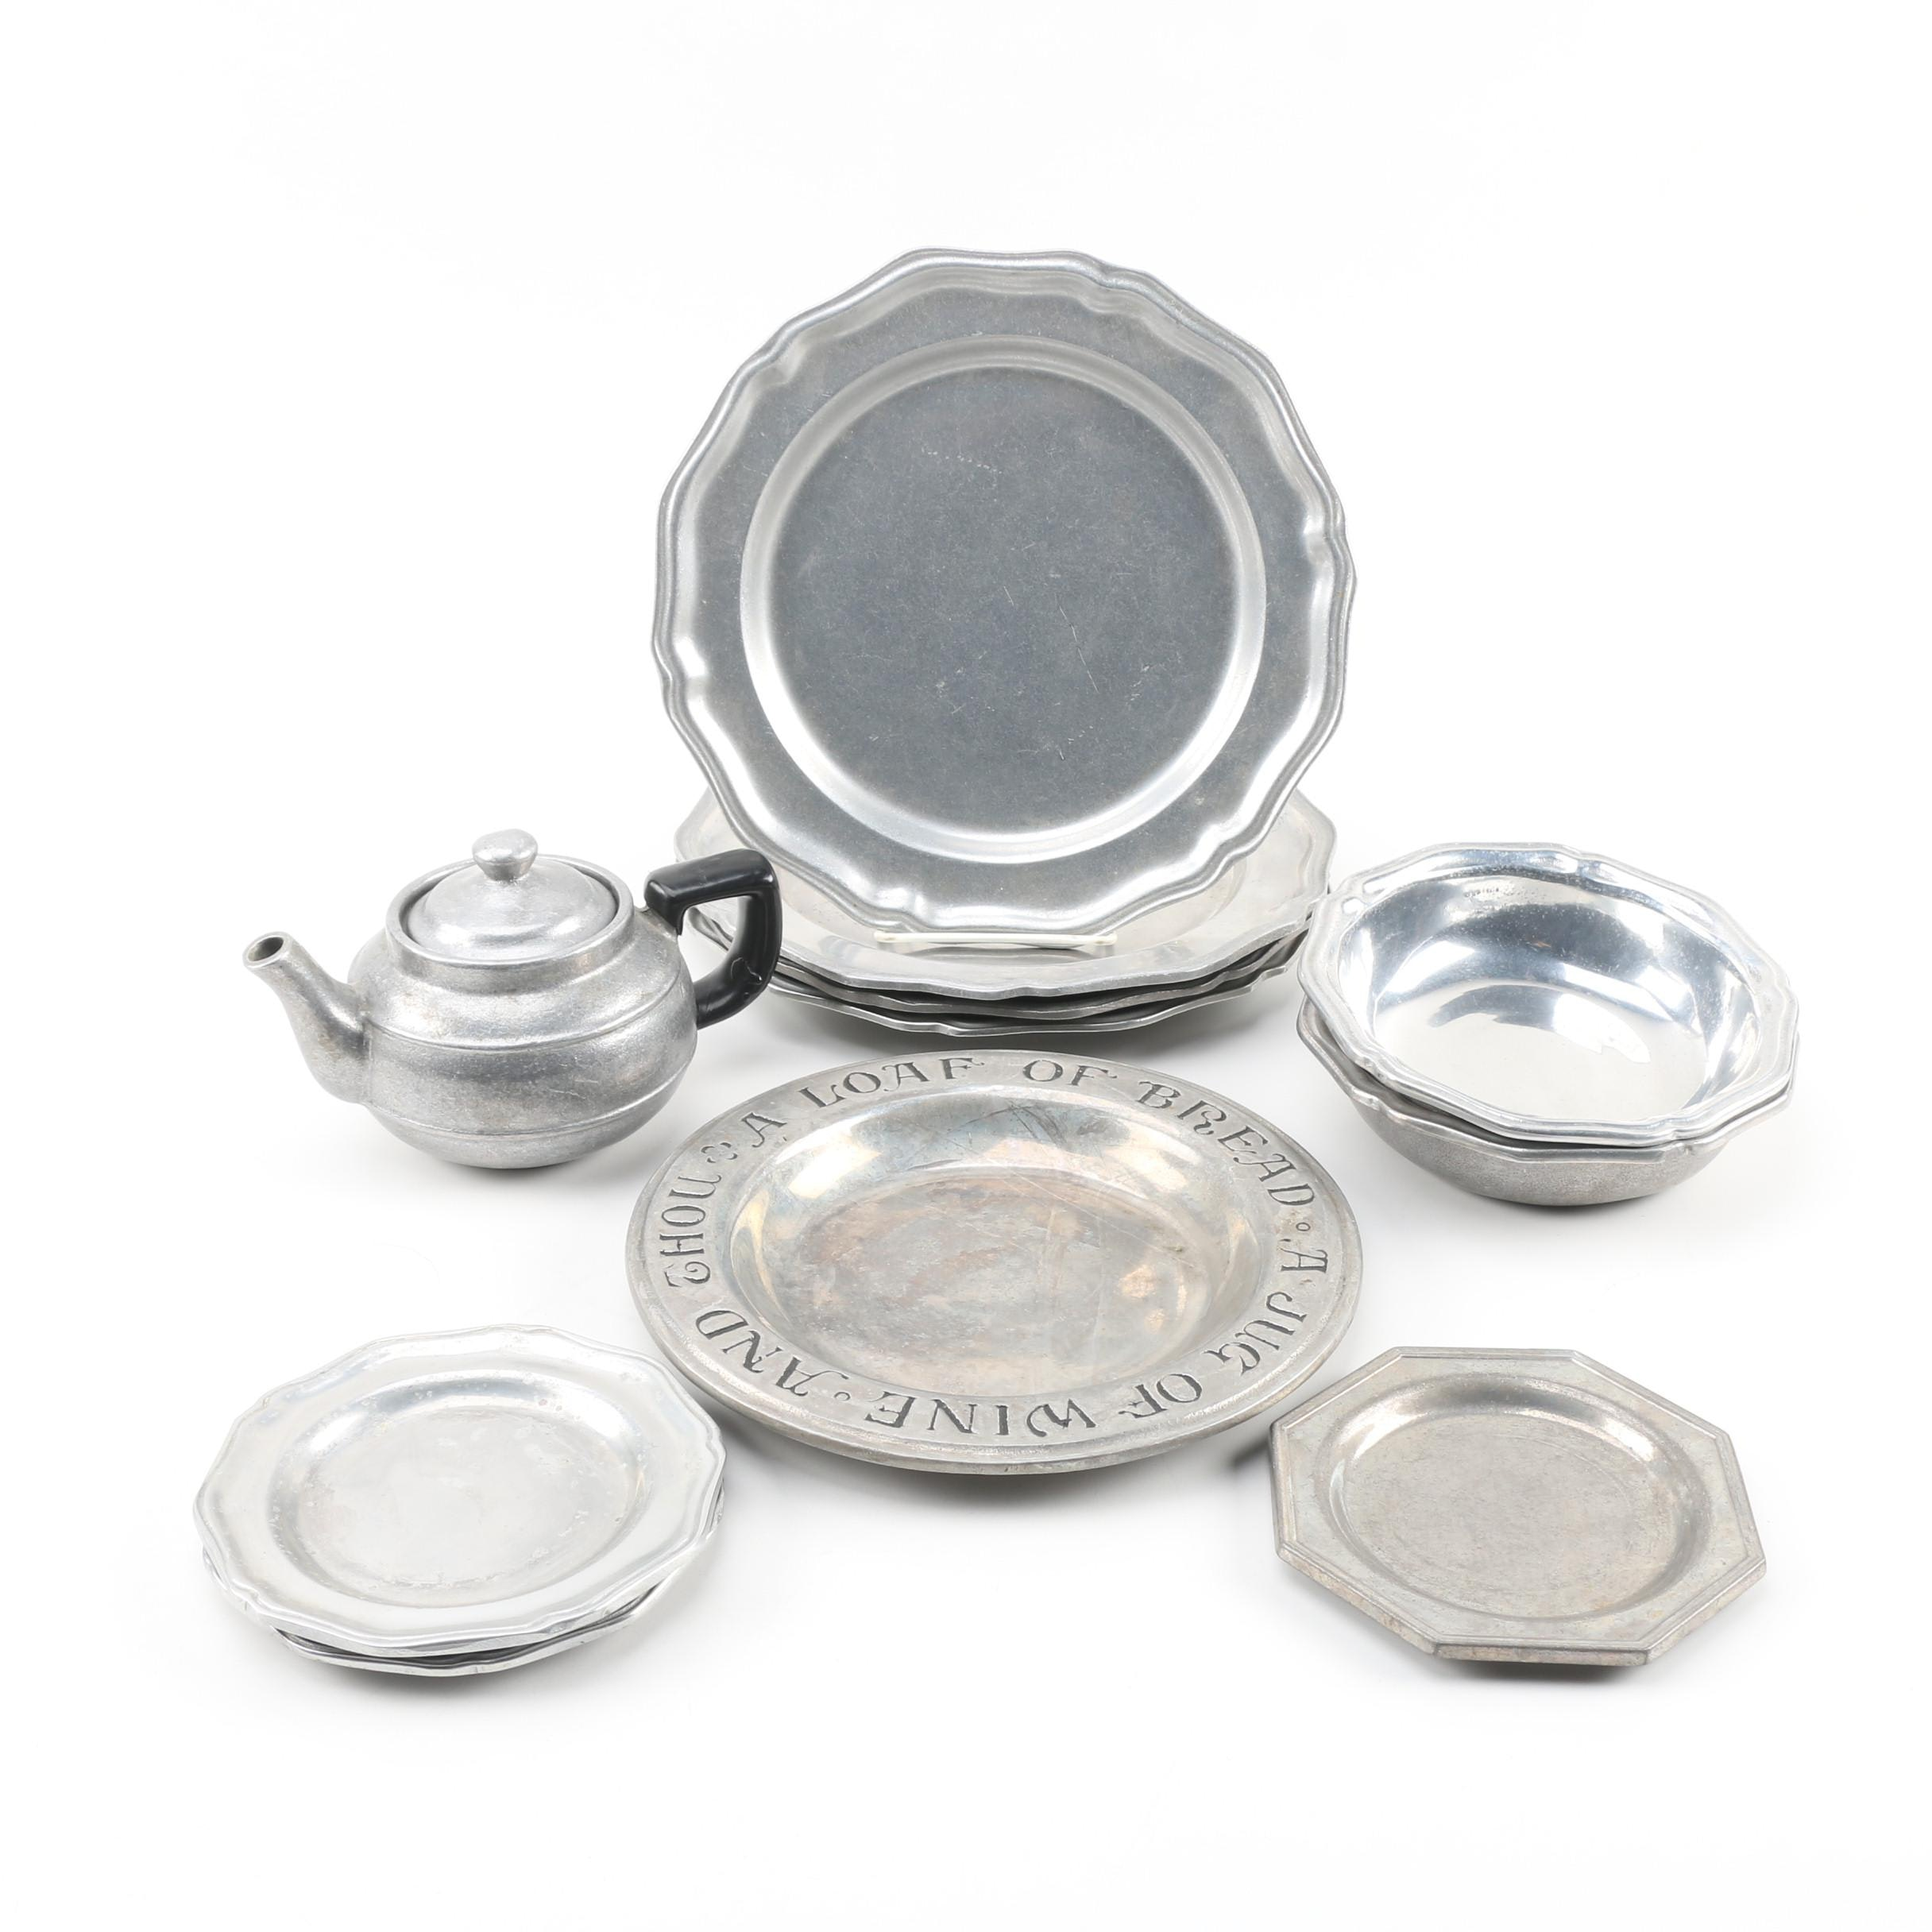 """Wilton Armetale """"Queen Anne"""" Pewter Plates and other Tableware, 1970s"""